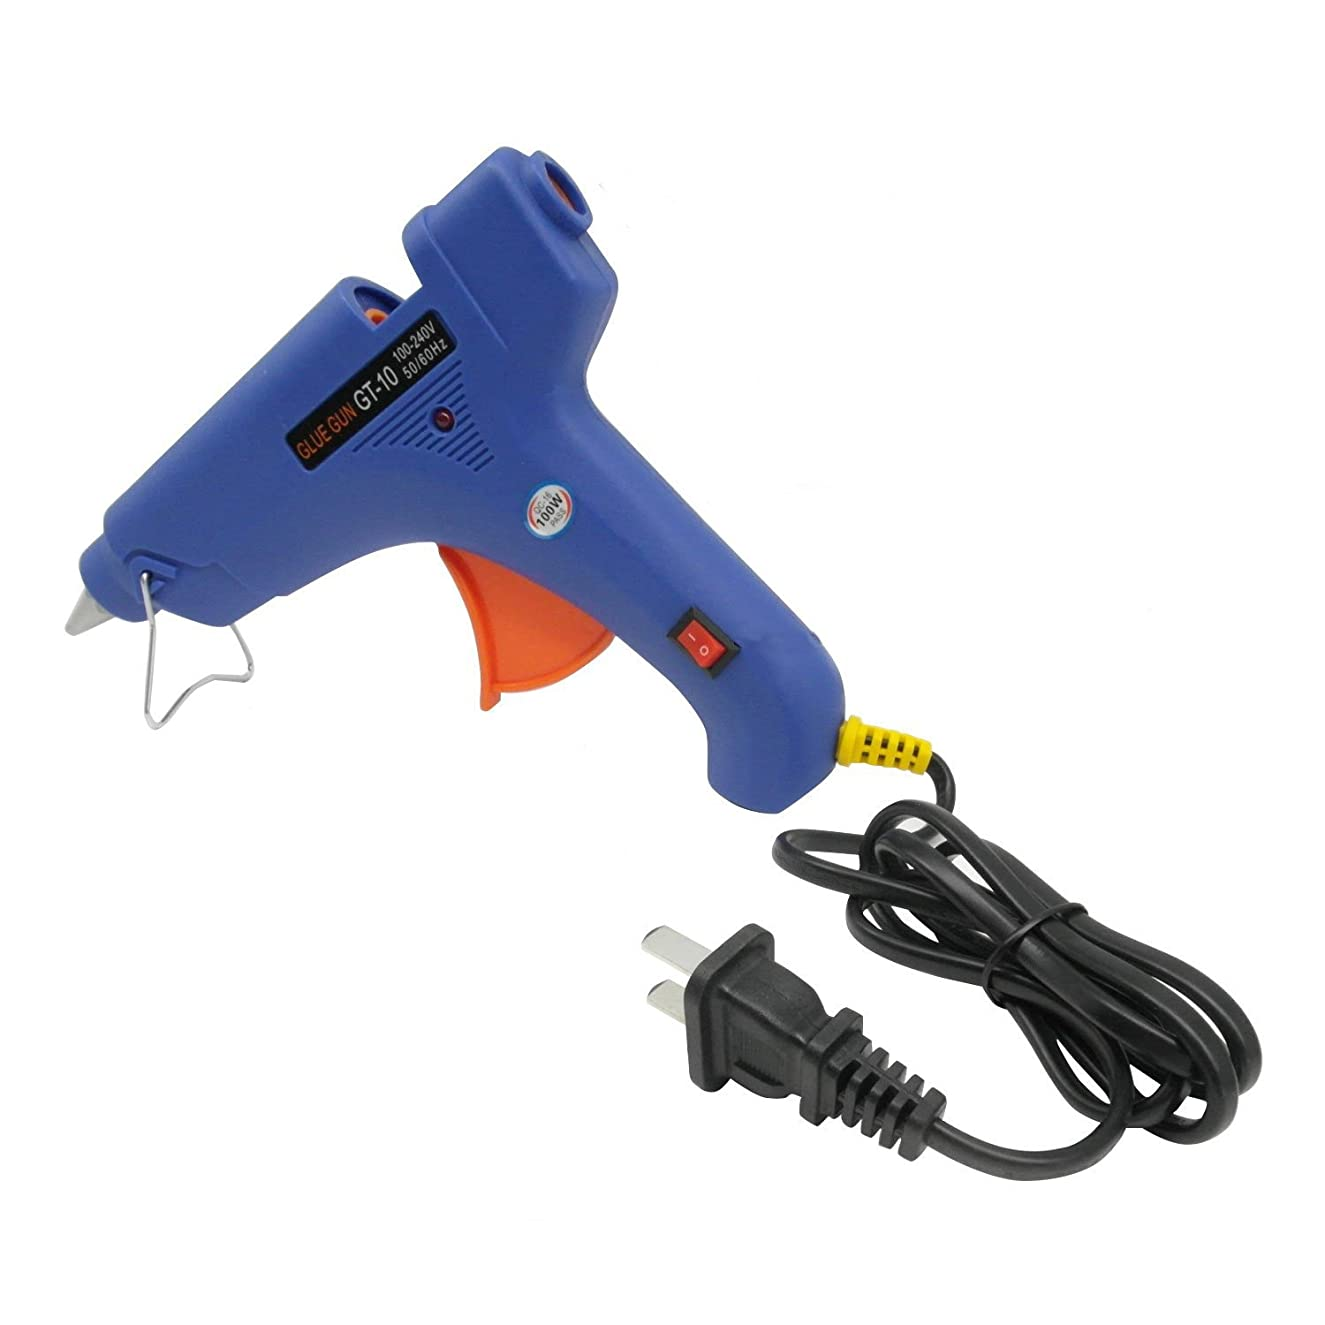 TrendBox Hot Melt Glue Gun 100W 11mm Safety LED Light Indicator Melting Adhesive Handmade Craft DIY Home Office Project Fix & Repairs Items